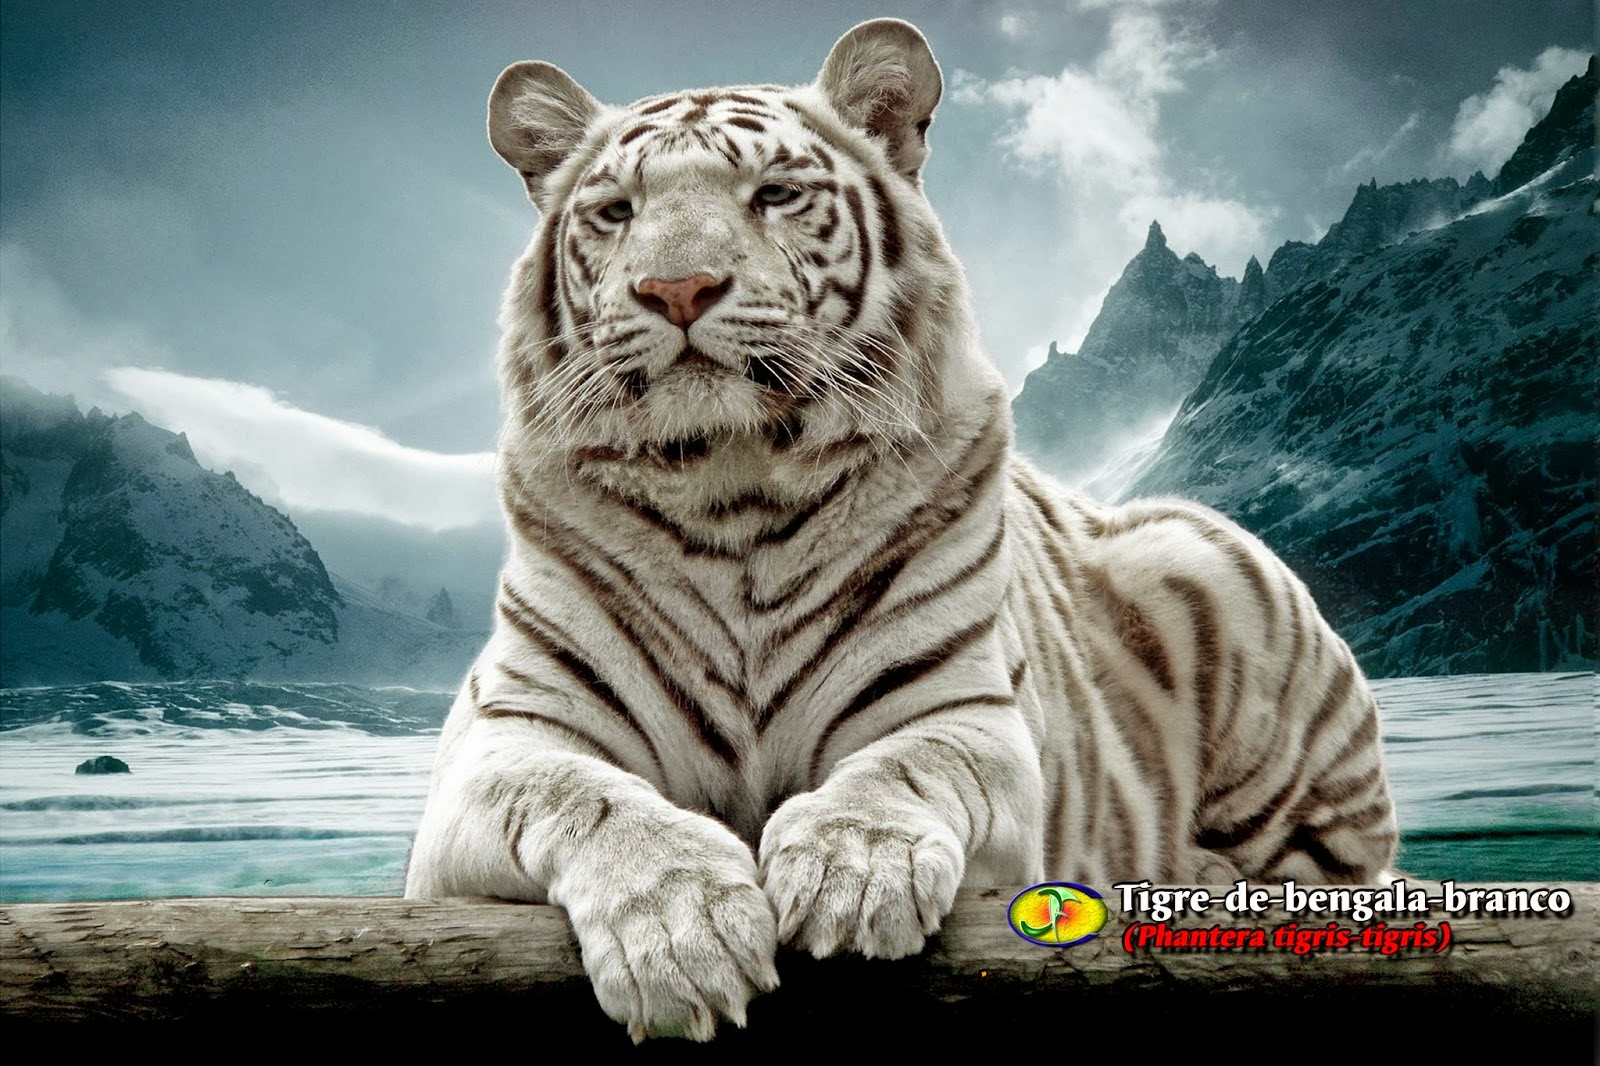 El Tigre de Bengala | Animales Salvajes - Planet Doc - YouTube